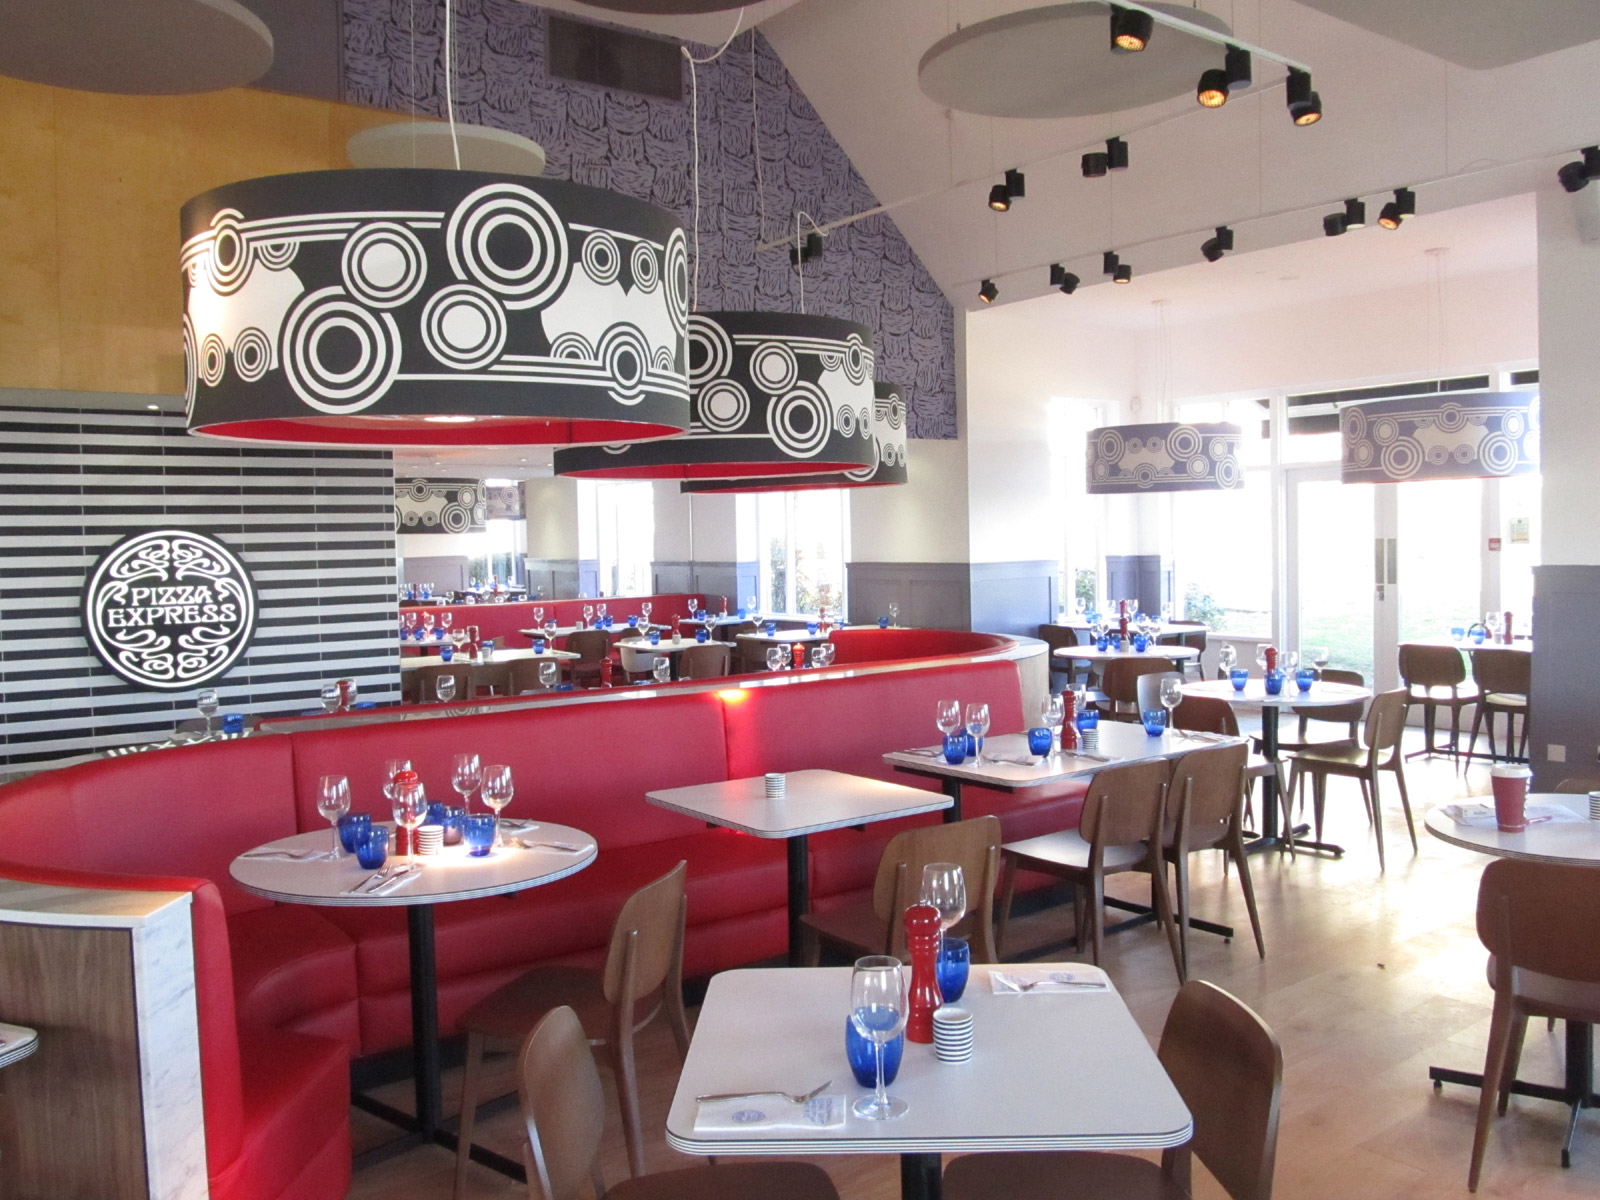 Reserve a table at PizzaExpress Braintree